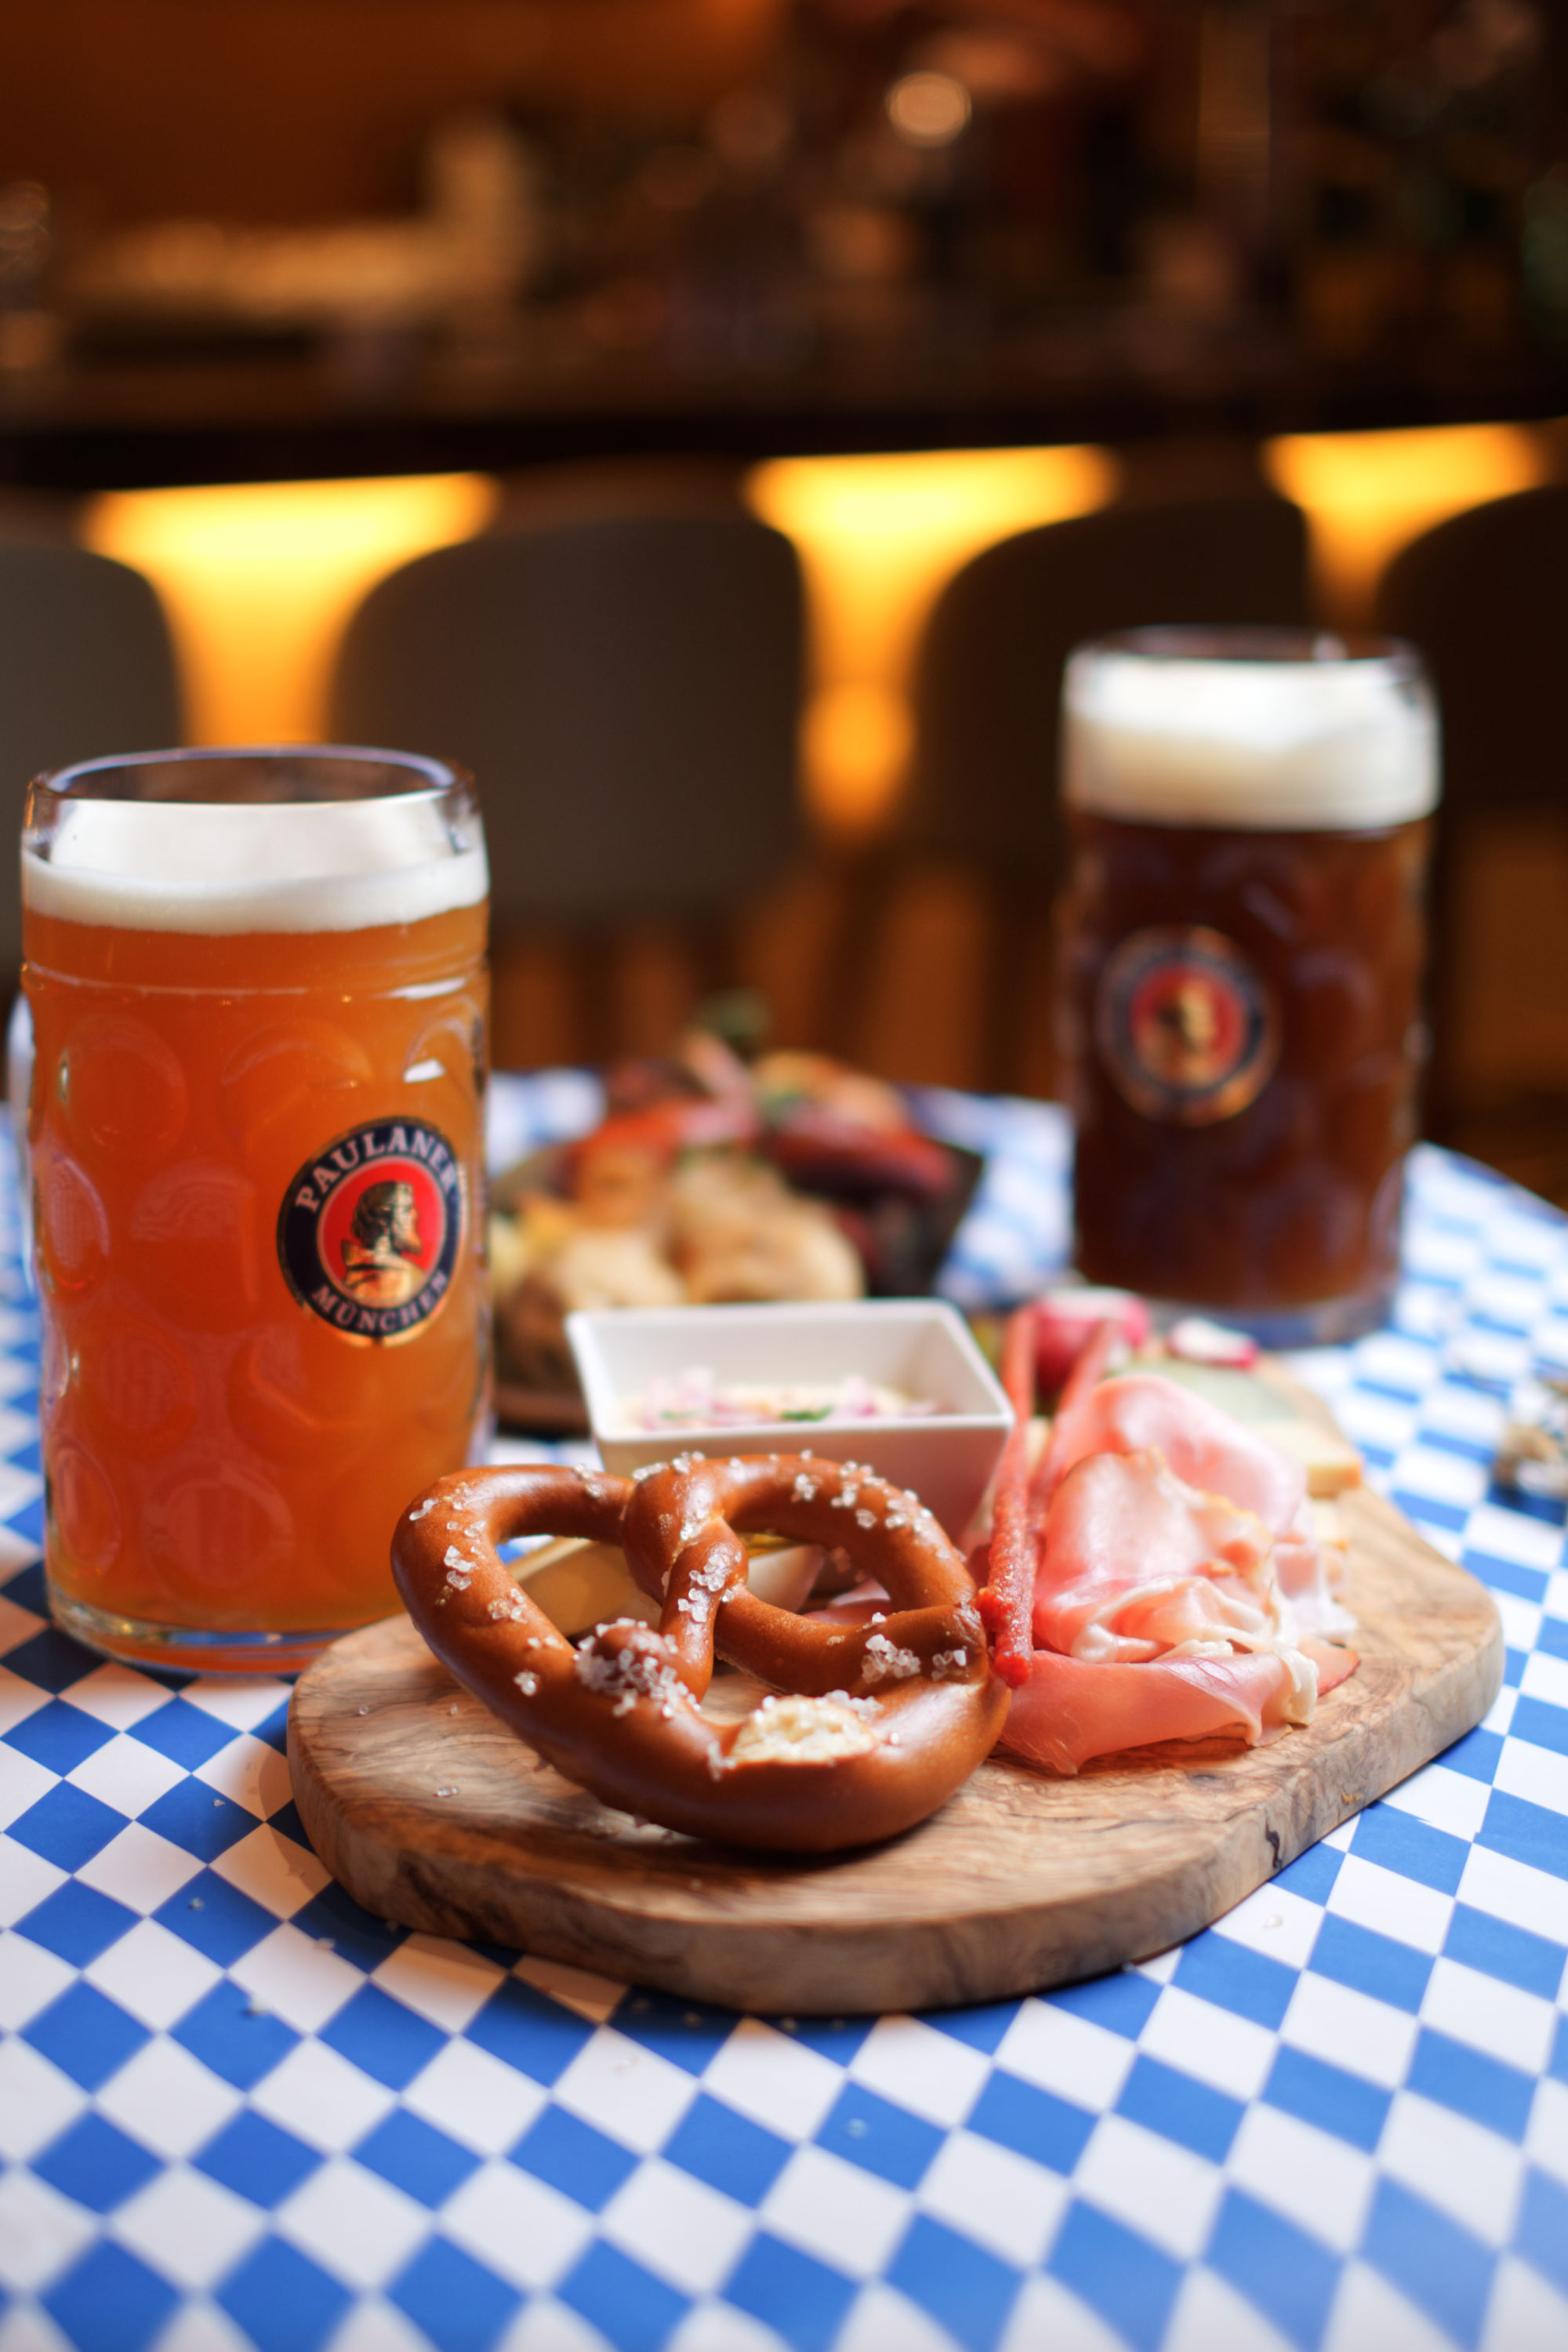 Brotzeit Board German Beer Festival at Palms Café and Bar